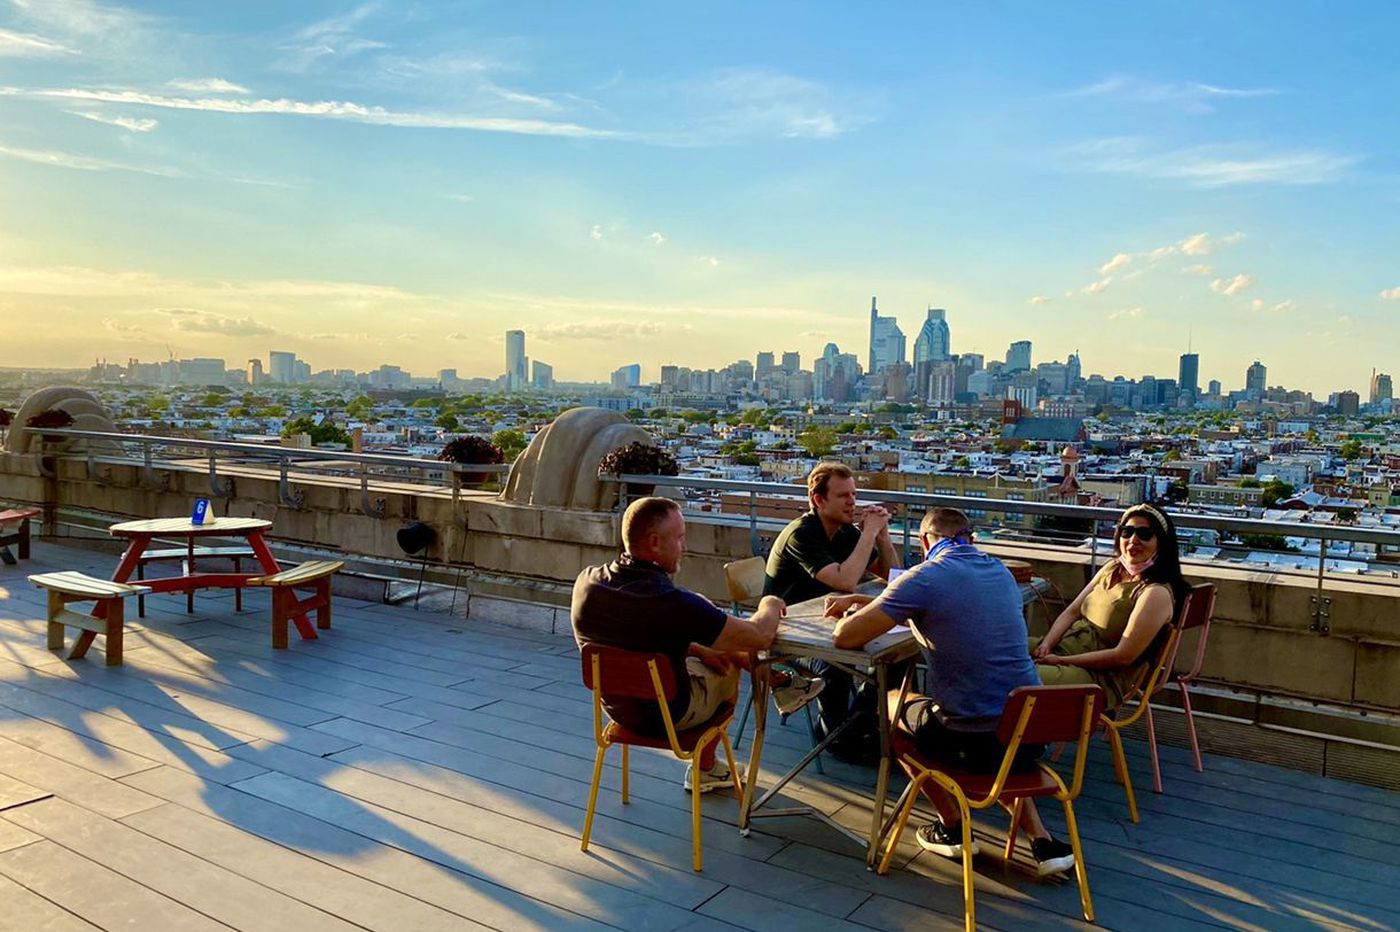 11 Philadelphia-area rooftop restaurants and bars that are open during the pandemic